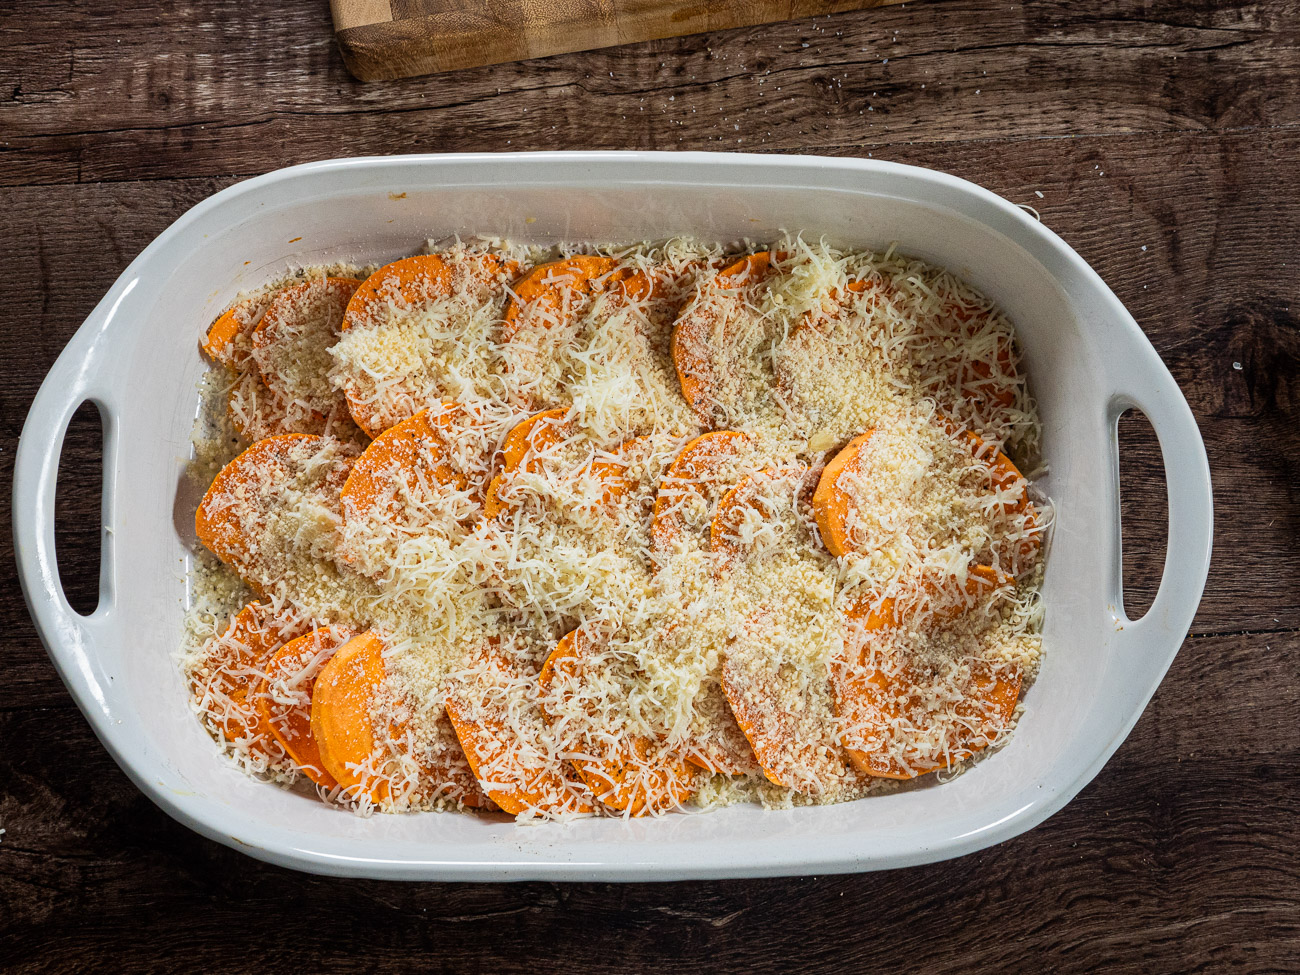 Arrange half of the potatoes in bottom of baking dish. Sprinkle with salt and pepper and half of the cheeses. Top with remaining potatoes and season again with salt and pepper.